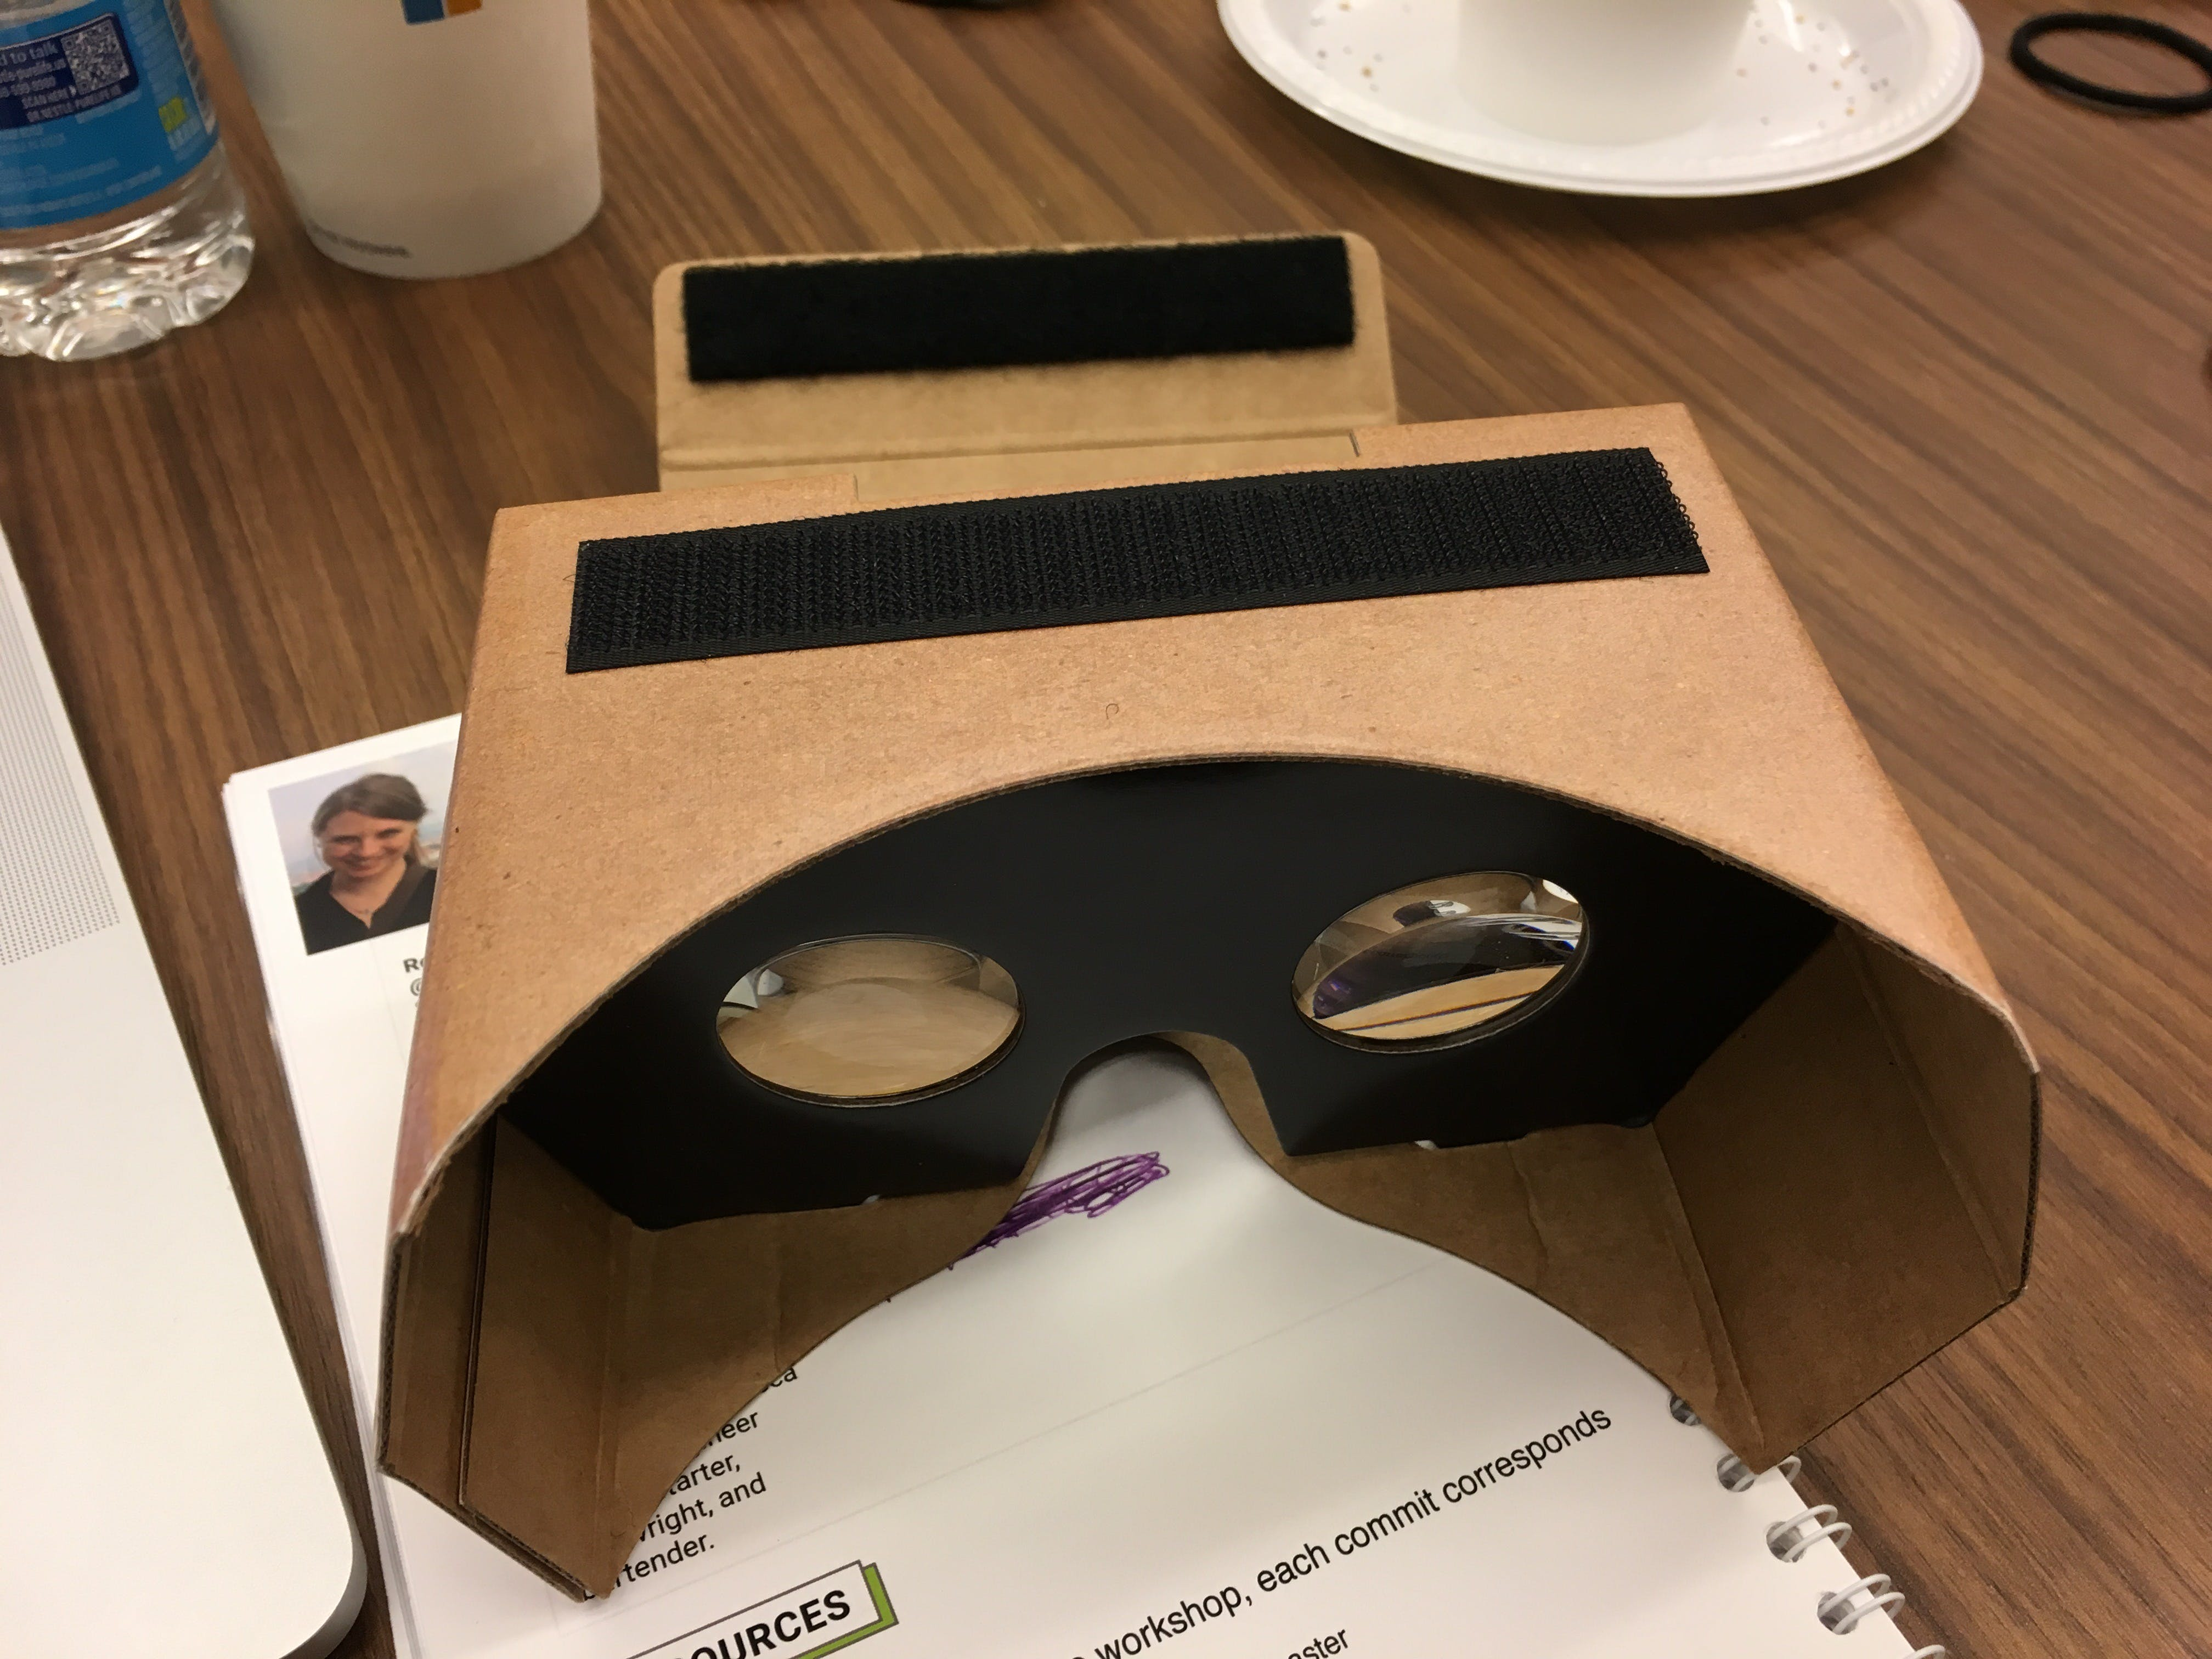 collective idea - vr cardboard - virtual reality.jpg